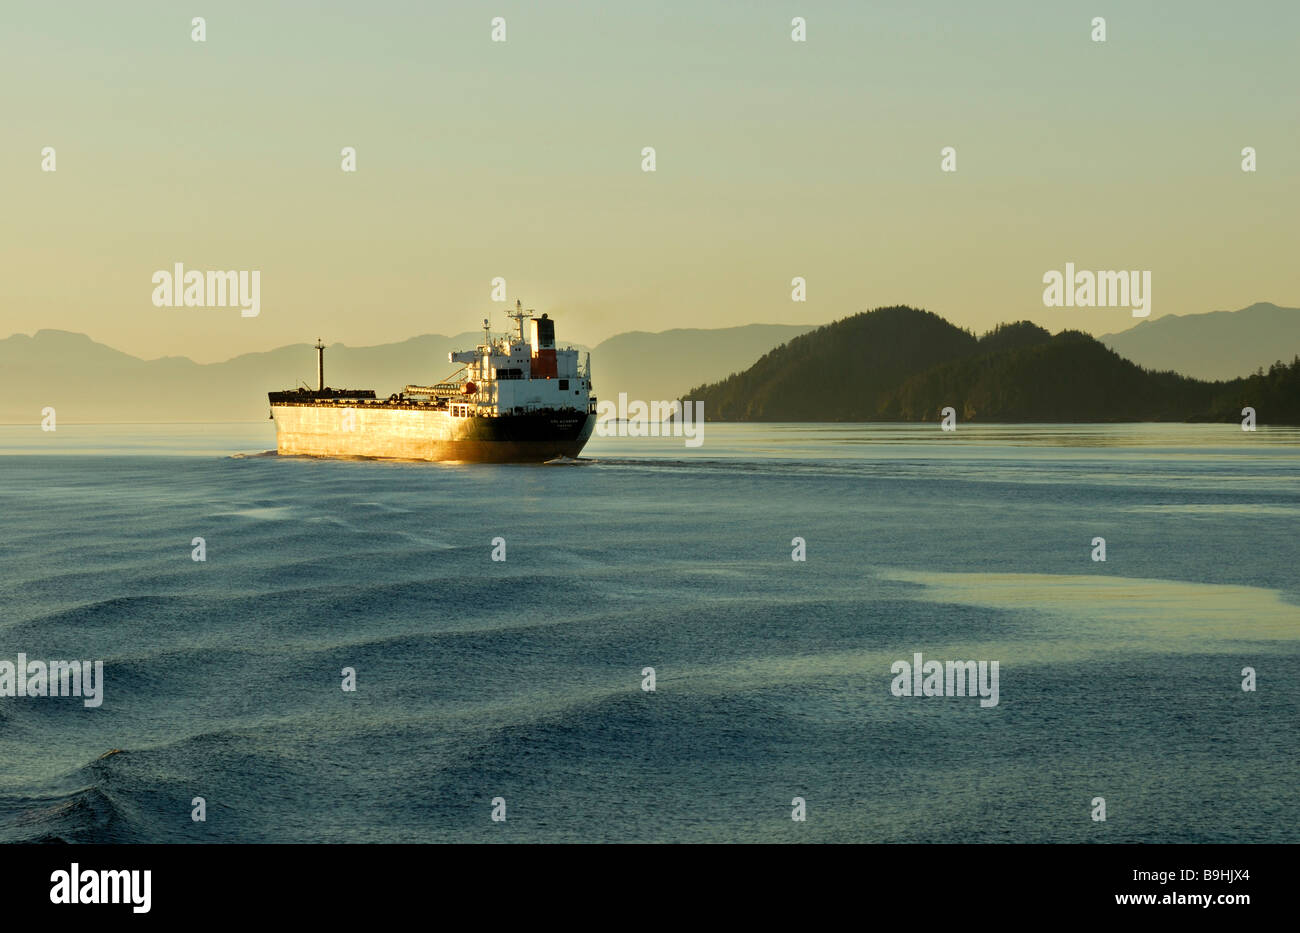 Freighter on the Inside Passage, British Columbia, Canada, North America - Stock Image